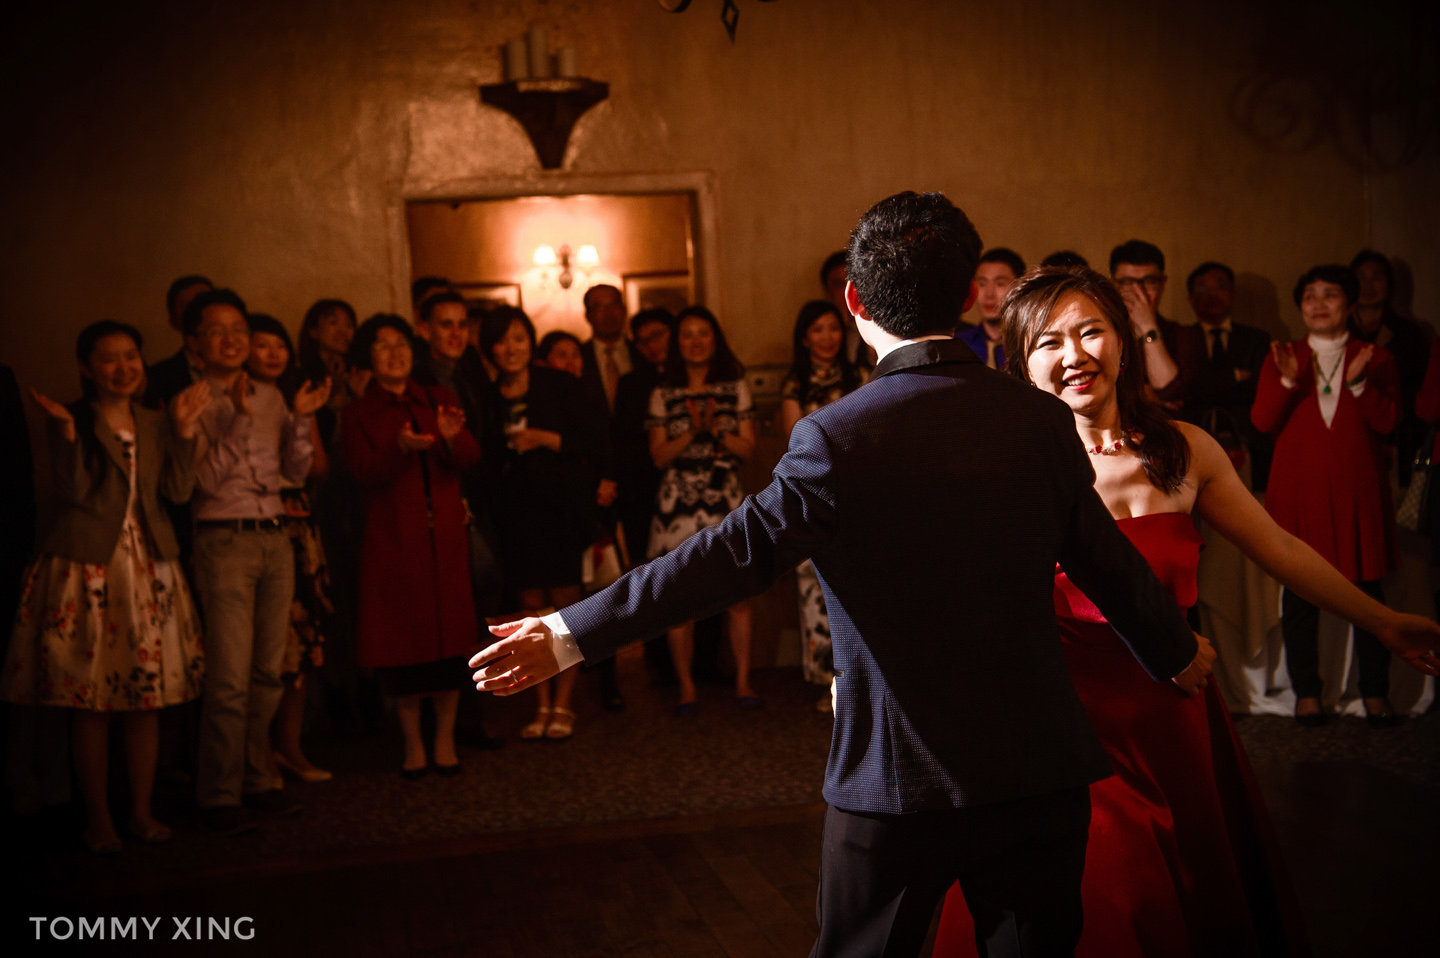 Los Angeles Wedding Photographer 洛杉矶婚礼婚纱摄影师 Tommy Xing-290.JPG